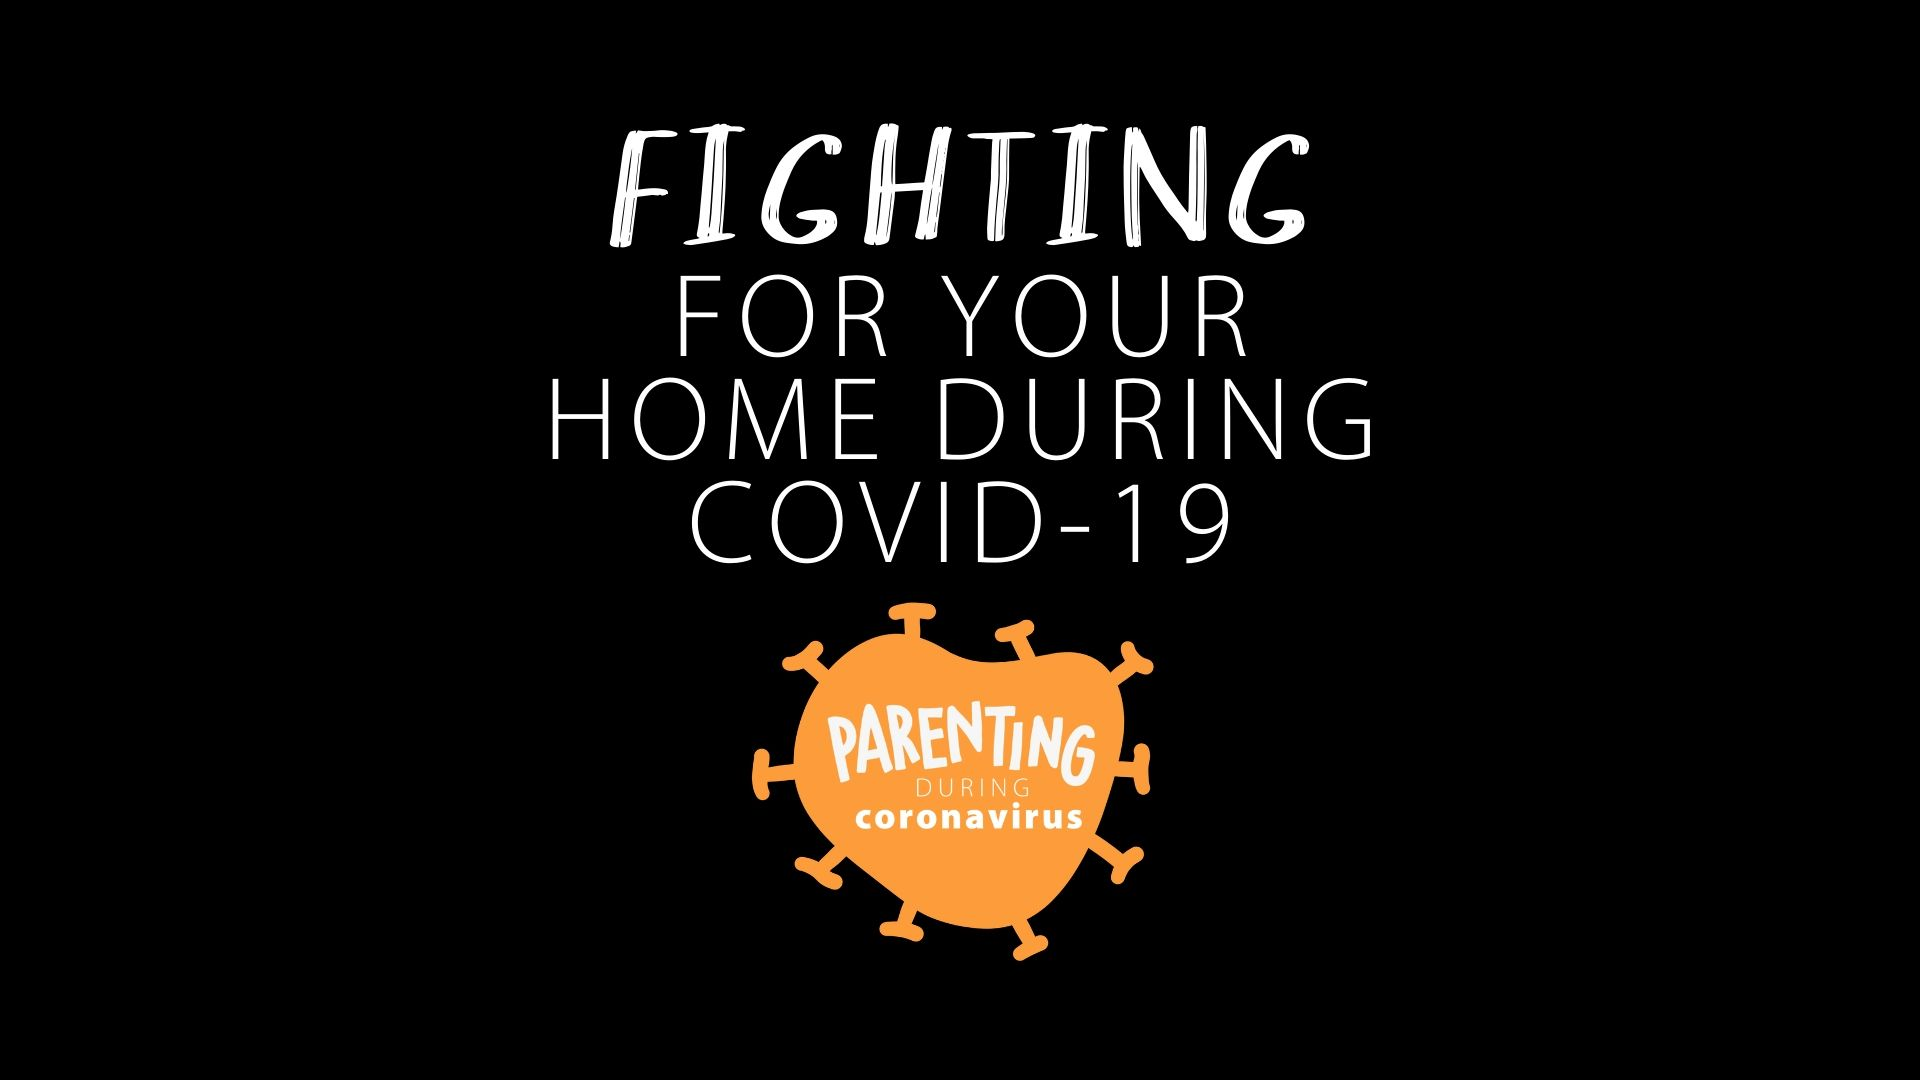 Fighting for Your Home During Covid-19